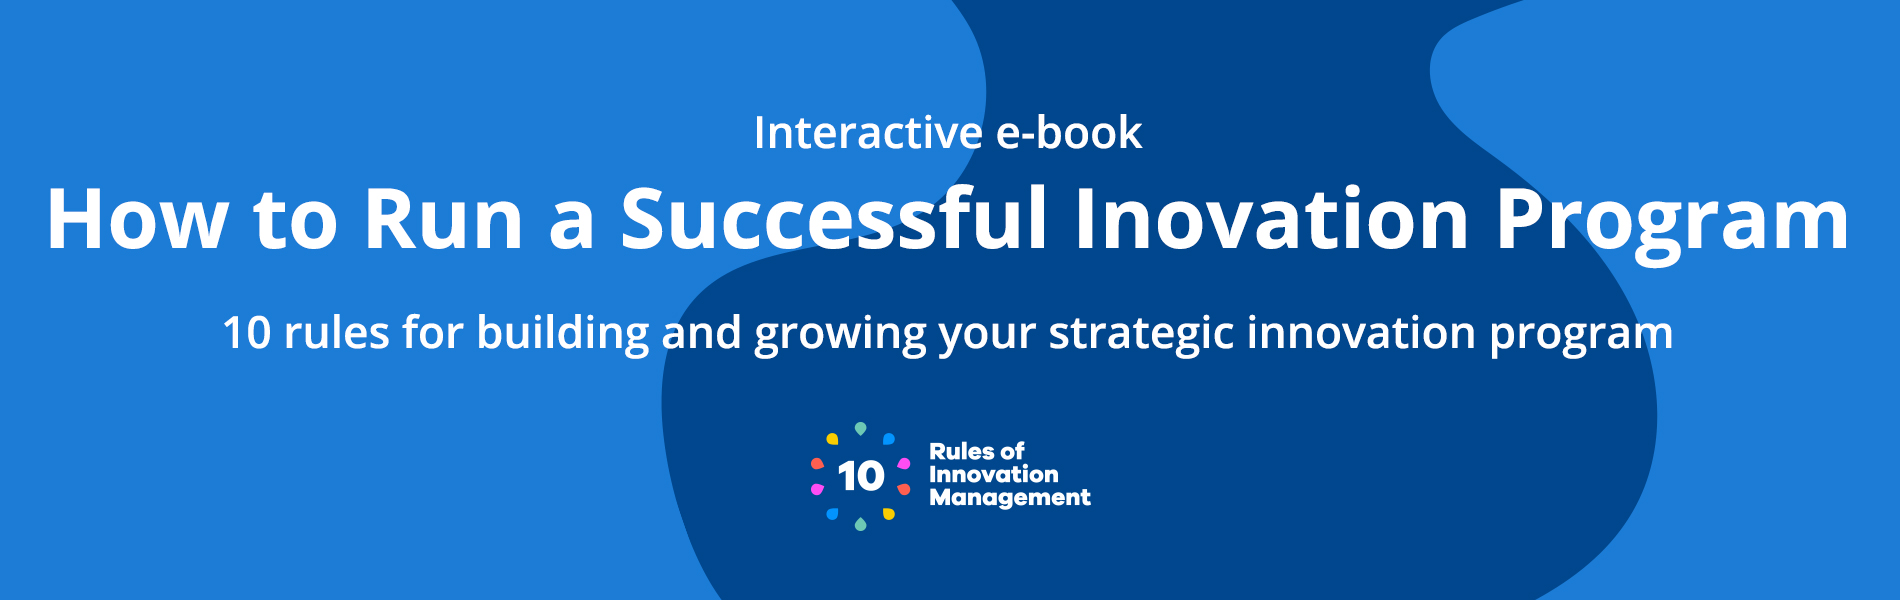 10-Rules-of-Innovation-Management-eBook-HYPE-Innovation